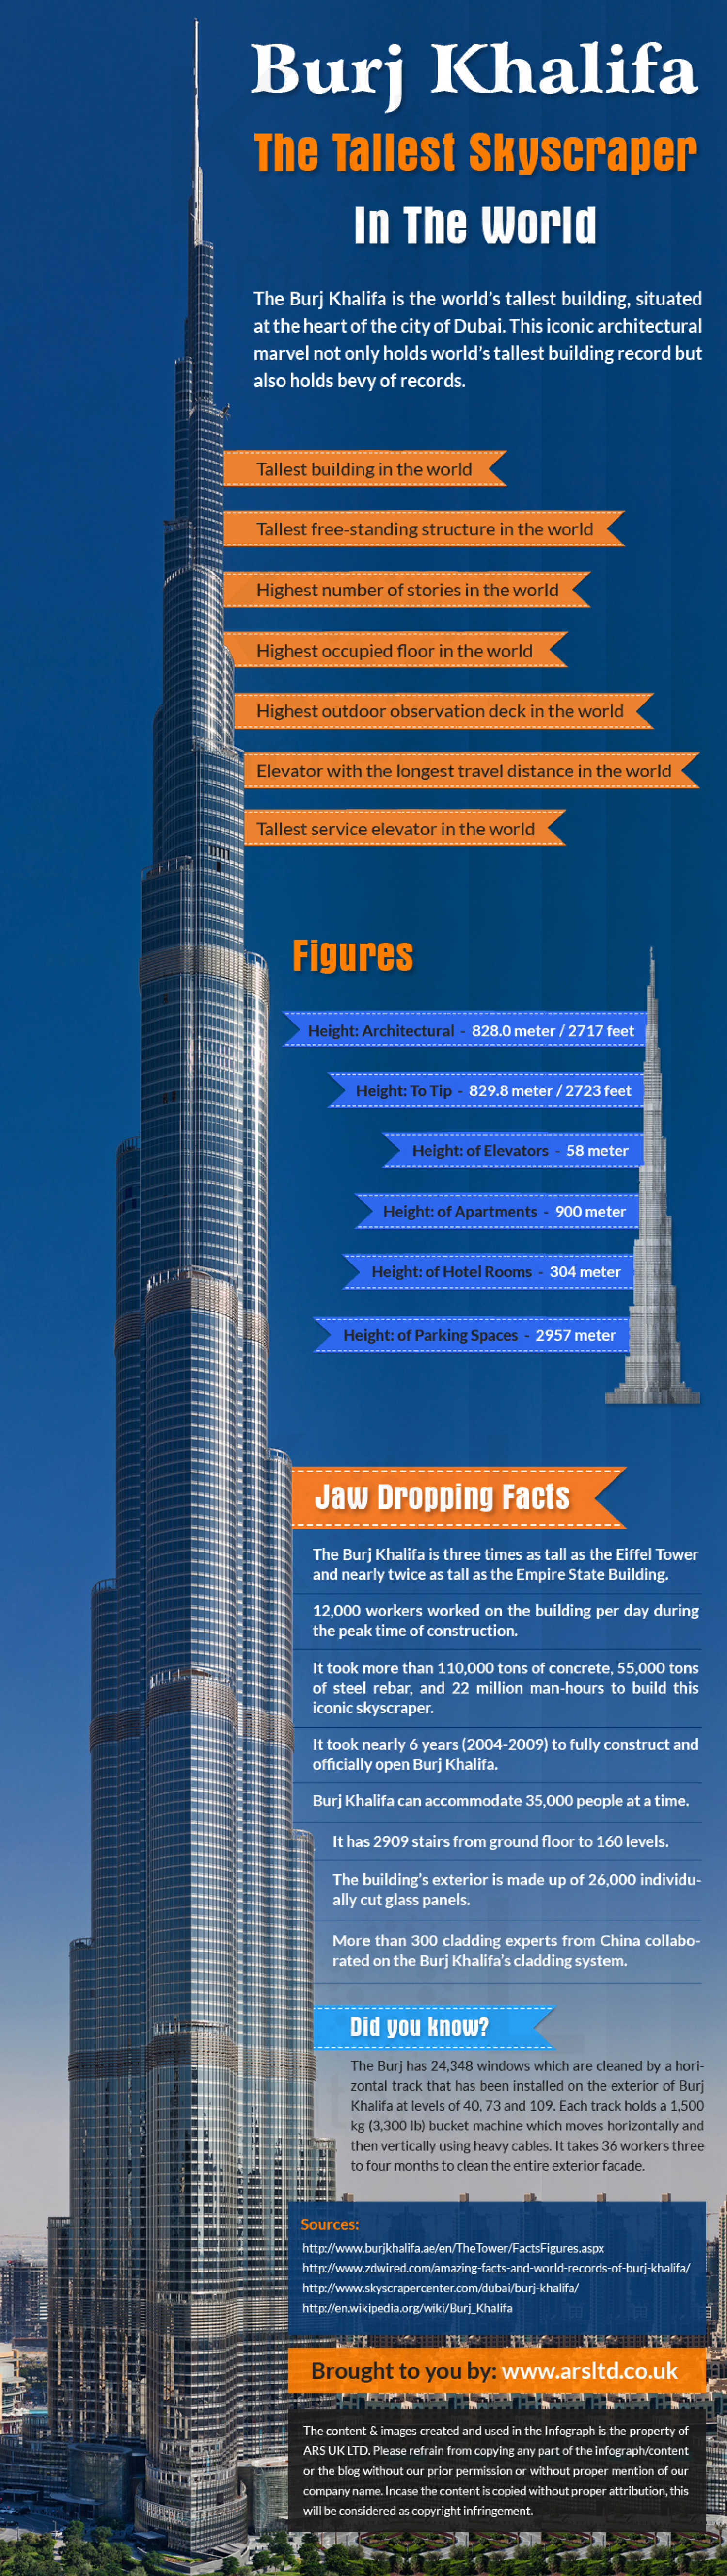 Burj Khalifa: The Tallest Skyscraper In The World Infographic